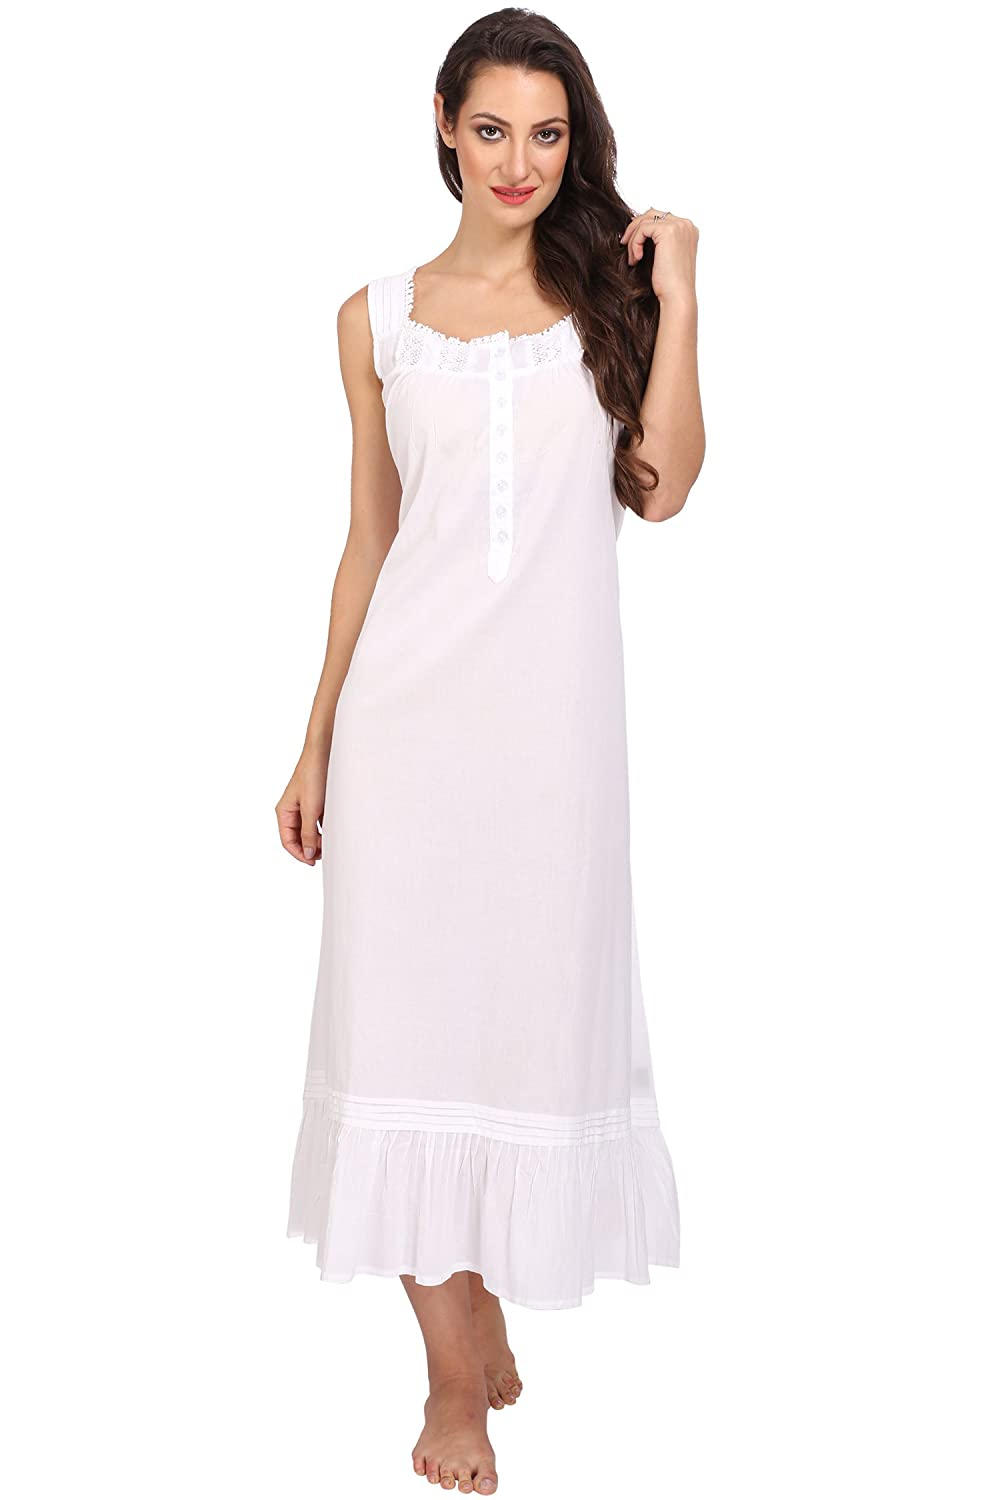 Victorian Style Nightgown Long Sleeveless Sleepwear Women Cotton Plus Size 12-20